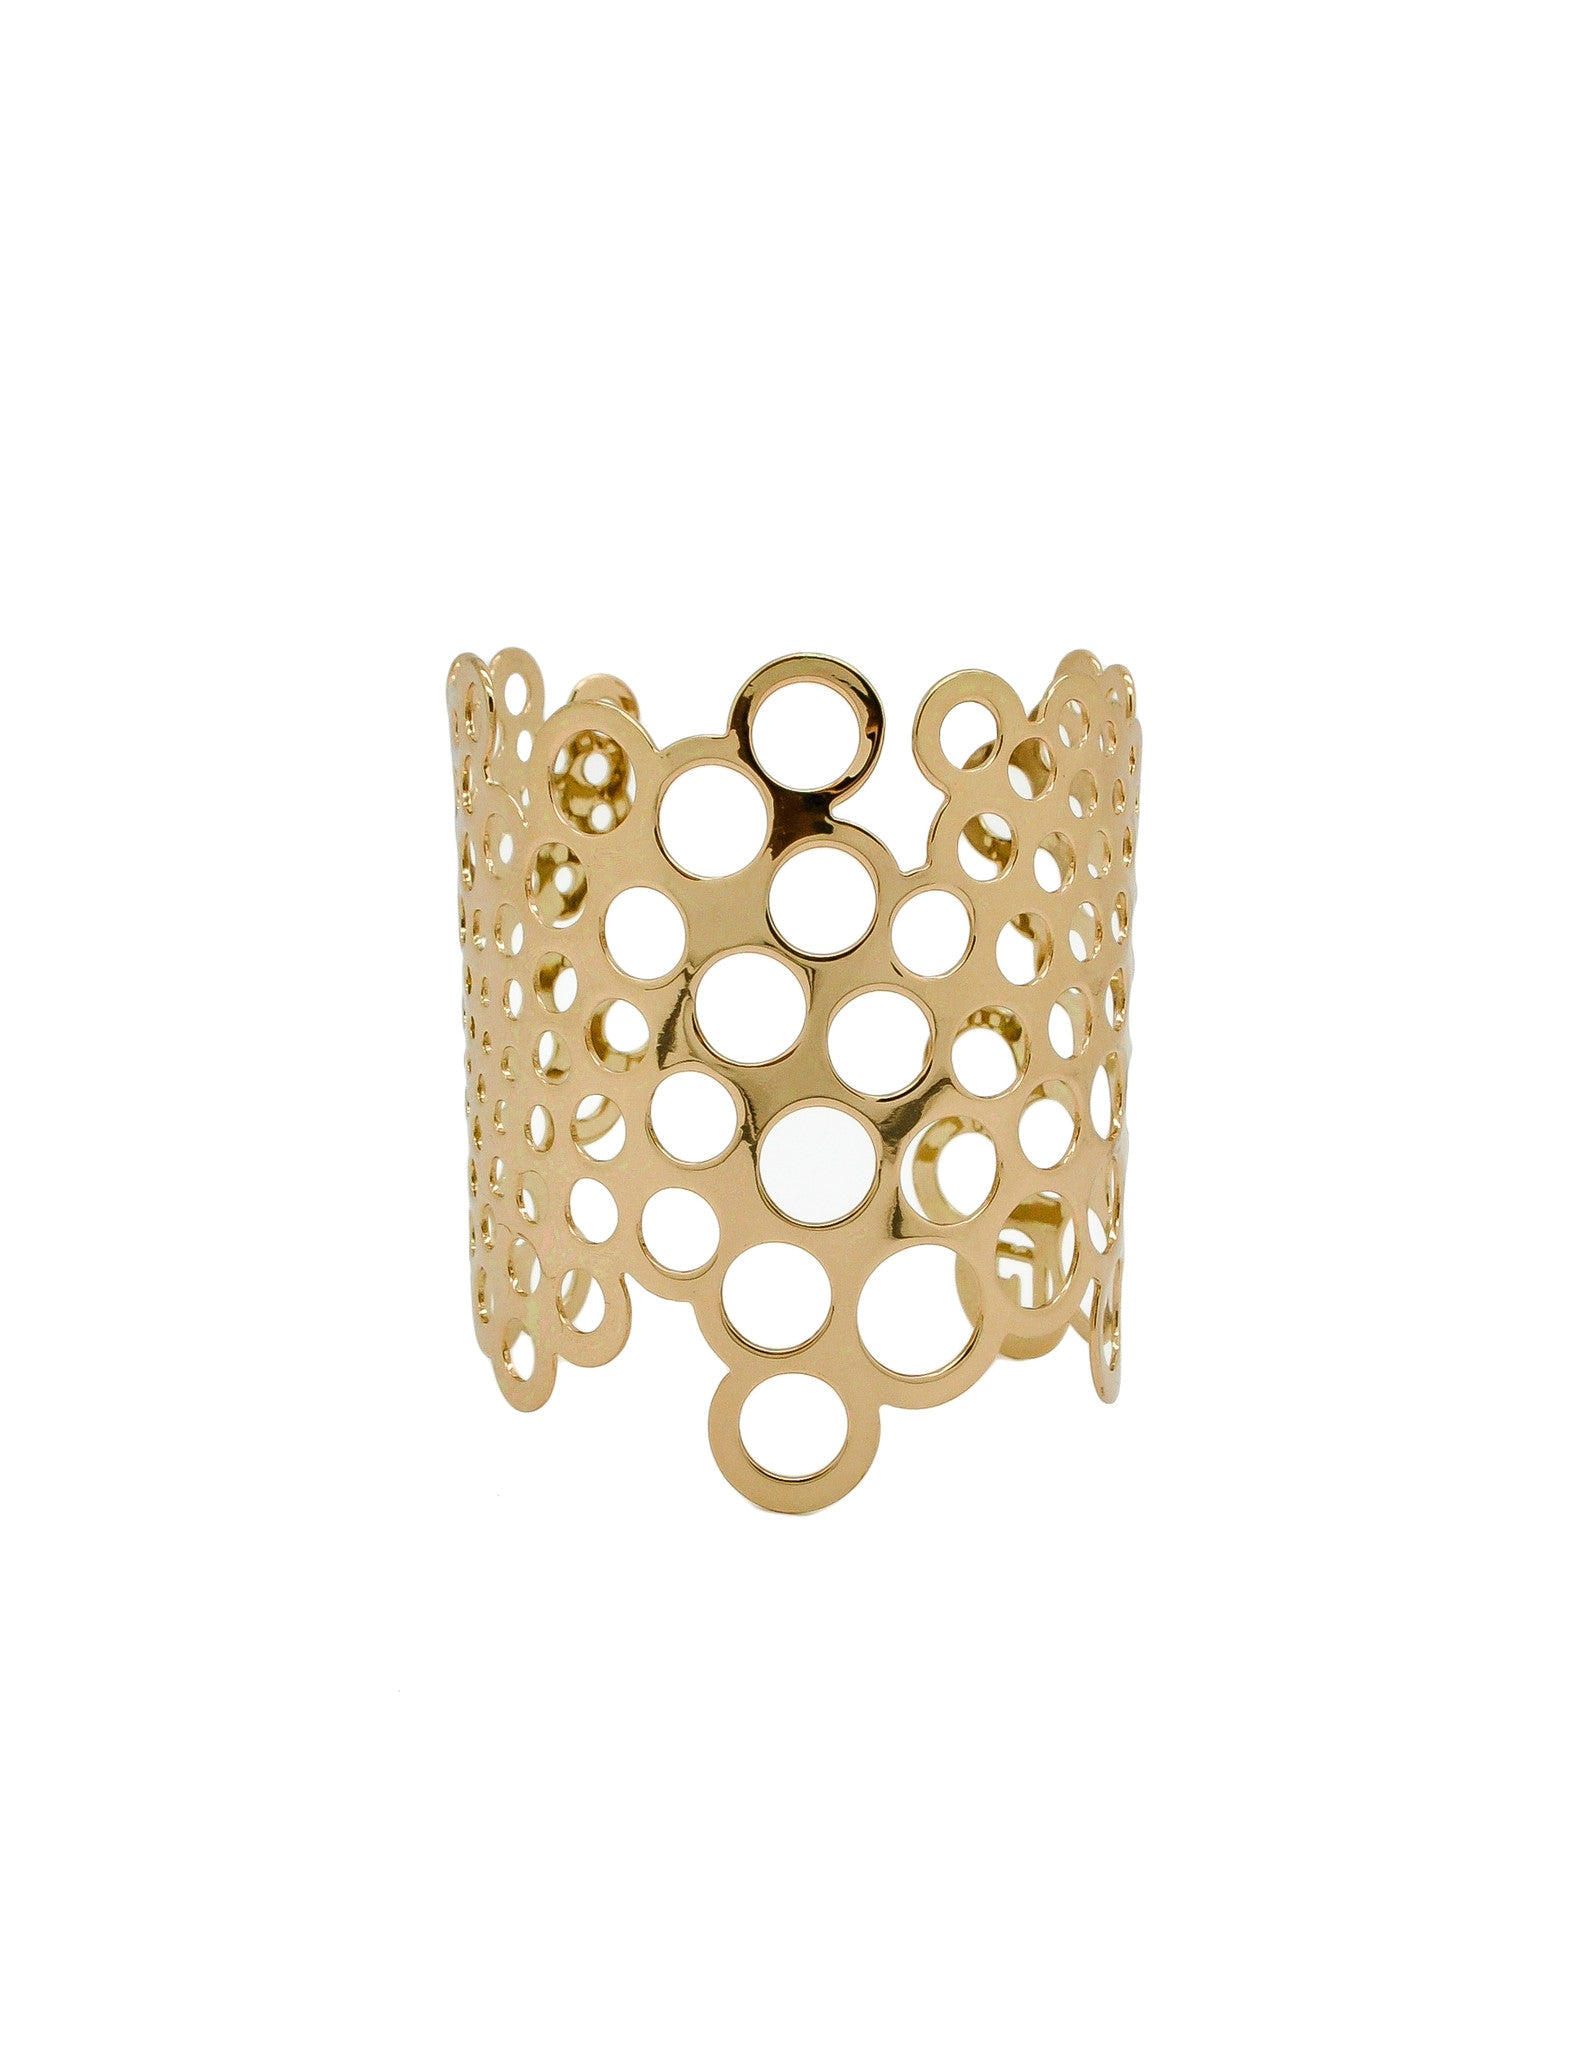 Paco Rabanne Vintage Gold Cut Out Bubble Cuff Bracelet - Amarcord Vintage Fashion  - 1